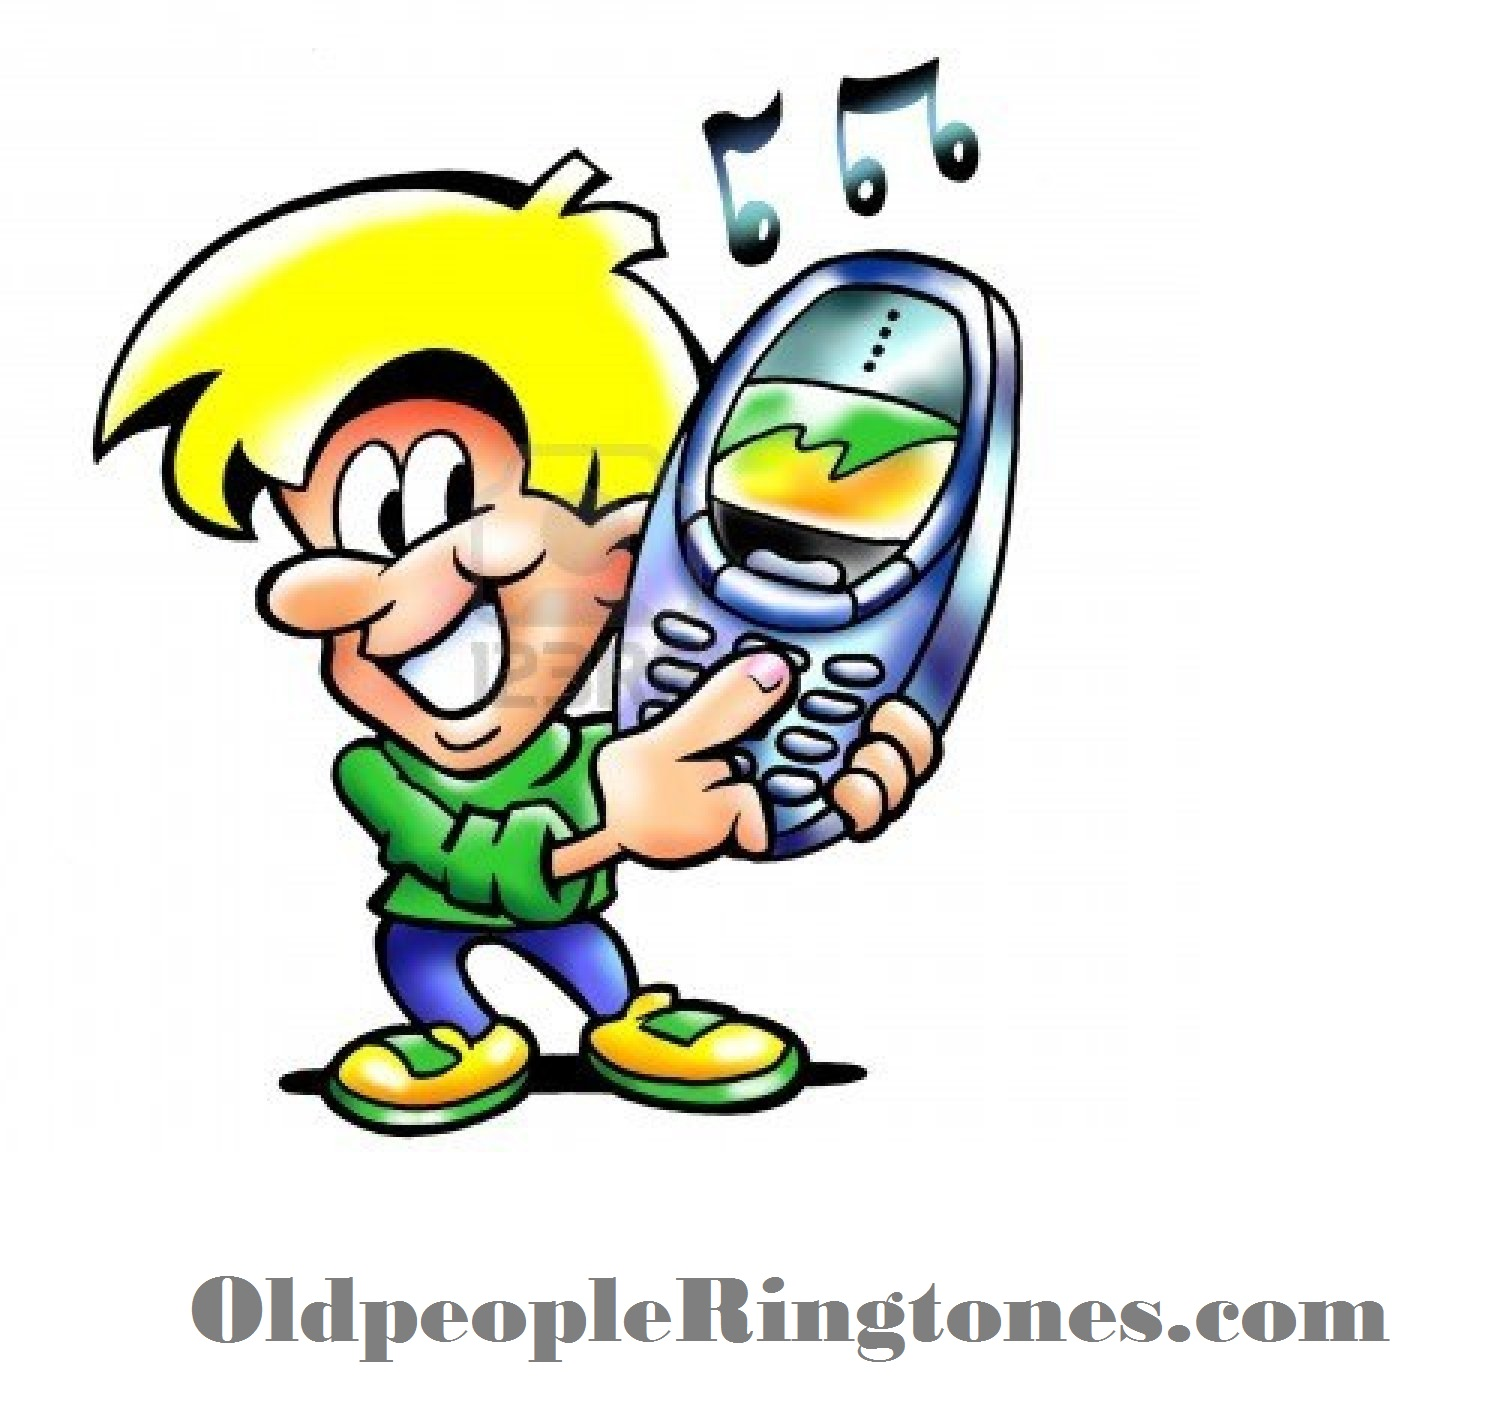 free cellular phone ringtone: